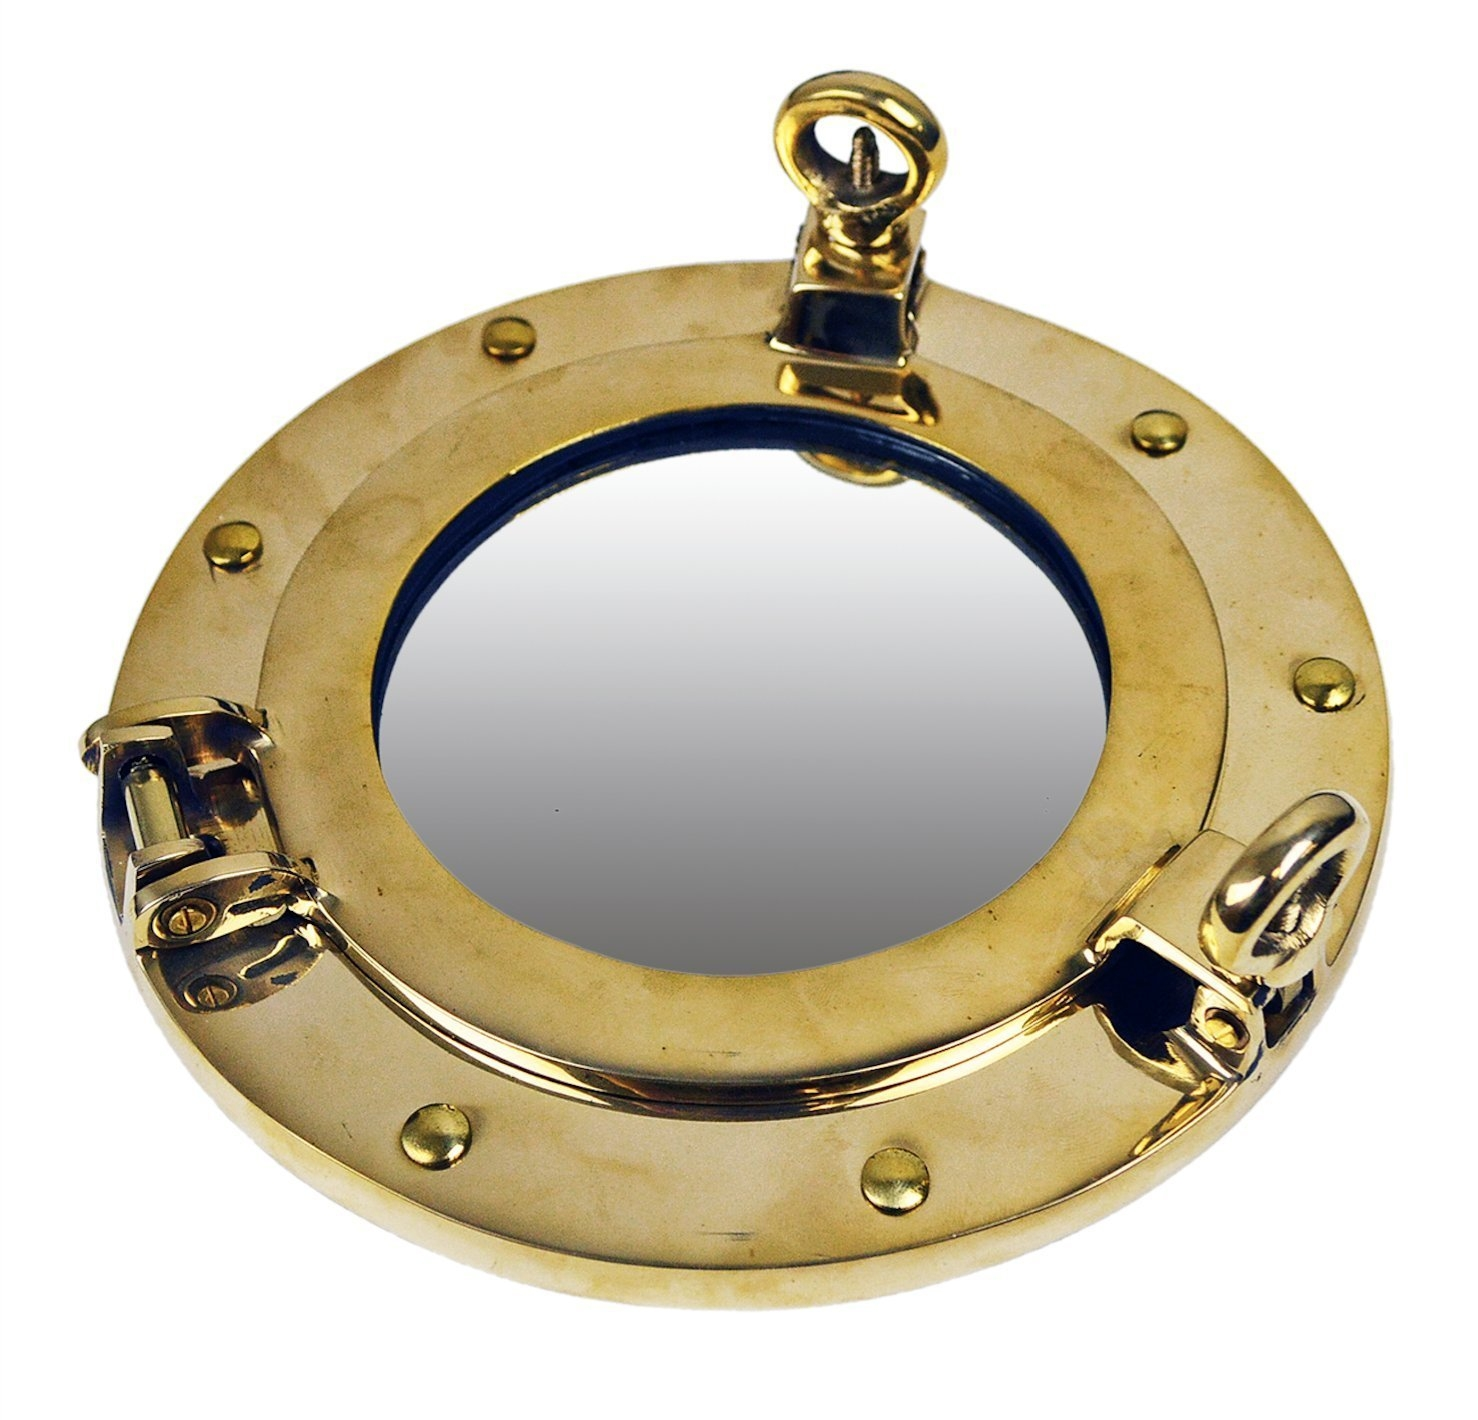 Brass Ships Porthole Mirrors Nickle Finish Porthole Mirrors Chrome Pertaining To Chrome Porthole Mirror (View 14 of 15)